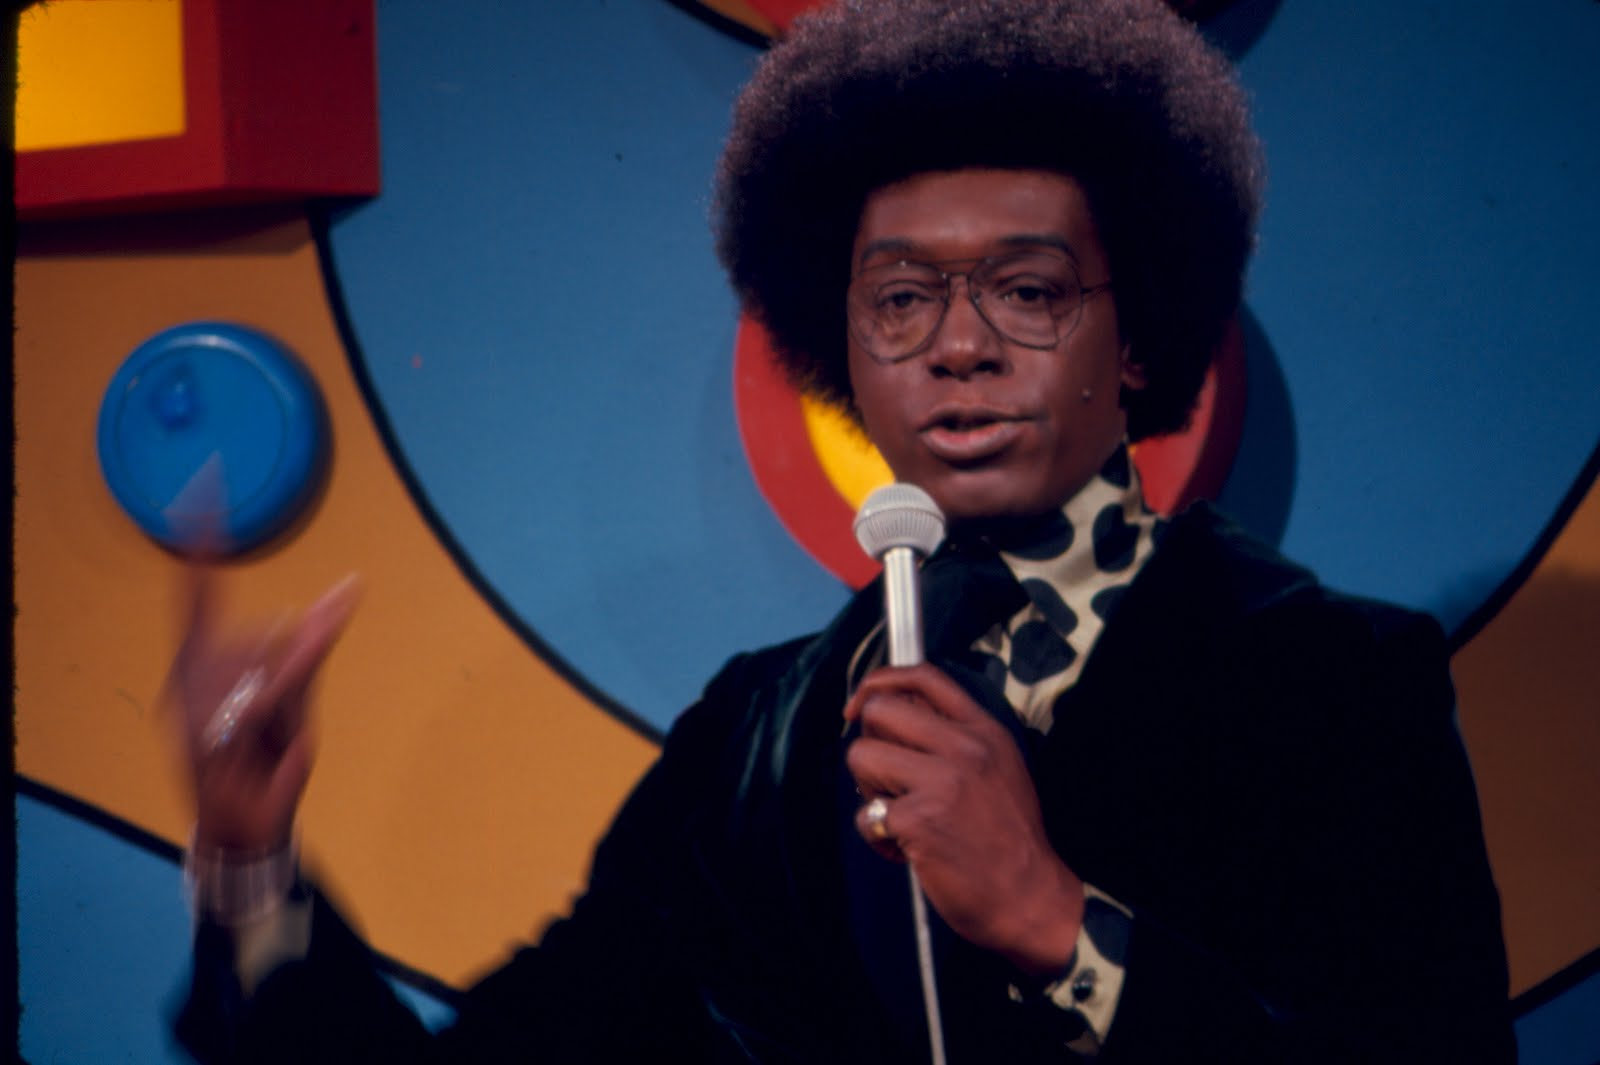 Don Cornelius - Soul Train